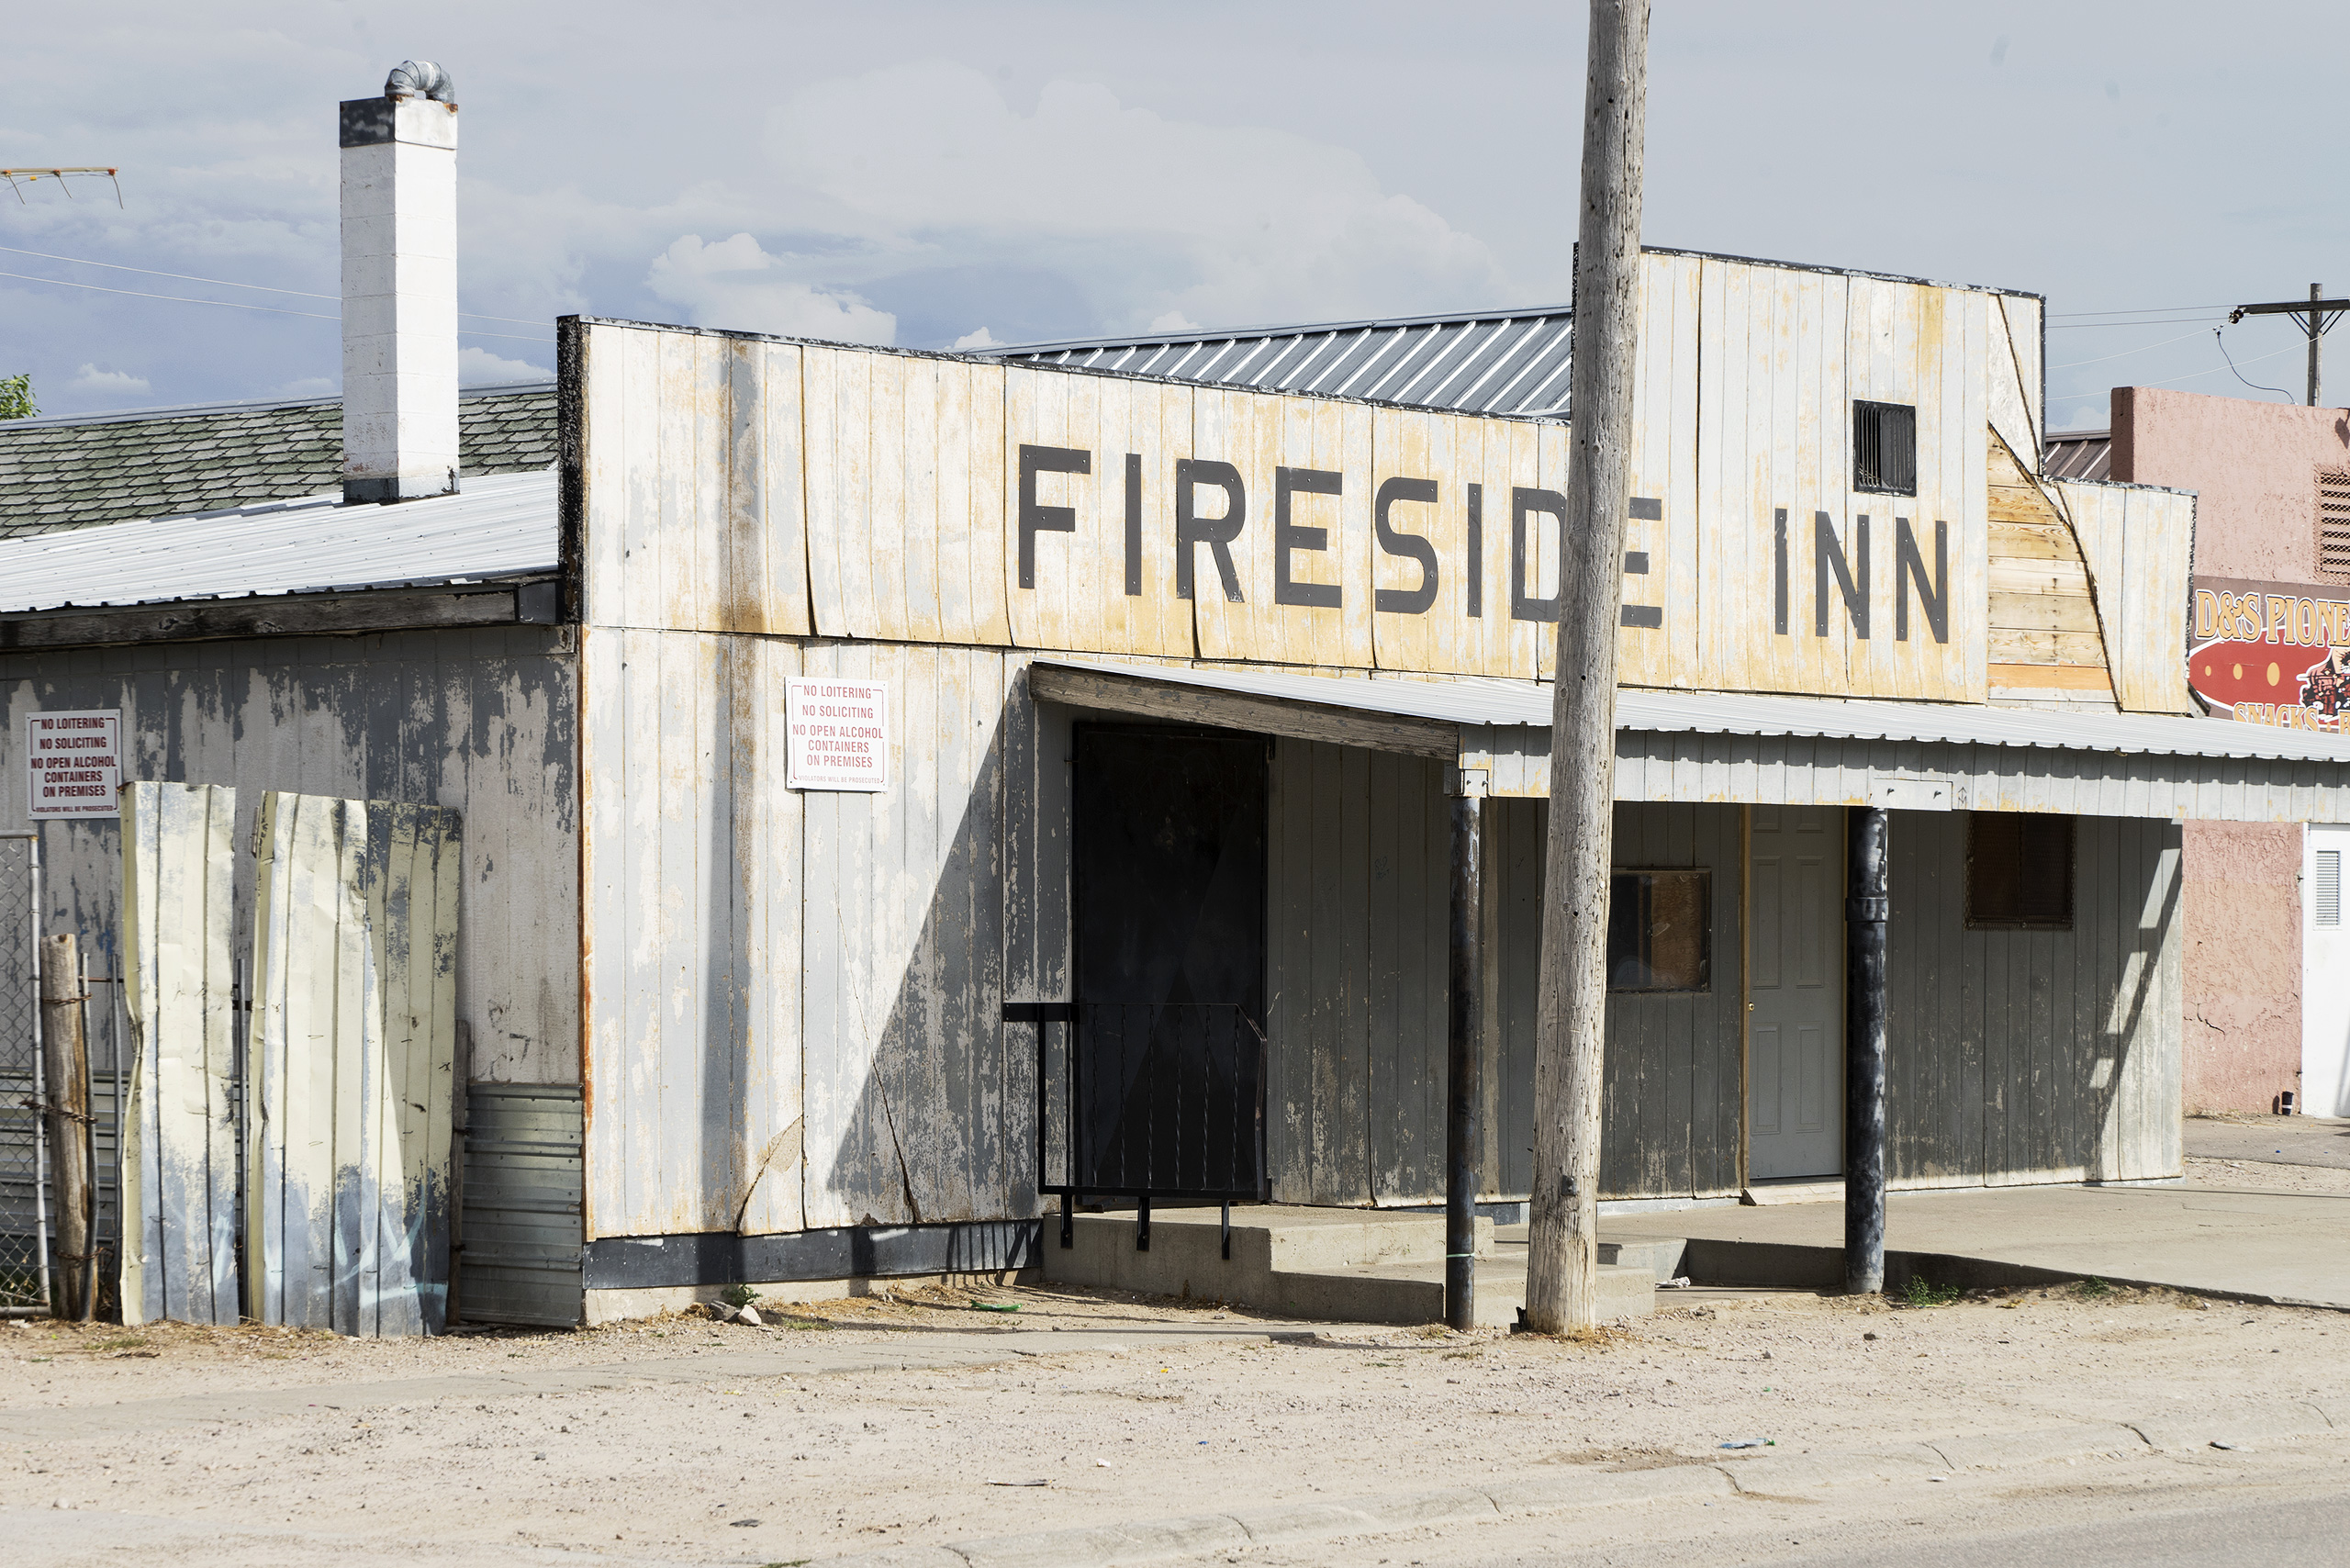 The Fireside Inn; Mission, SD  The Fireside Inn is one of the four bars and restaurants in Whiteclay that sell alcohol. The reason why I mention this is because Whiteclay is a 10-house town that sells nearly 5 million cans of beer every year; that is 13.000 cans a day. It is also the first village outside the Pine Ridge Oglala Sioux reservation in South Dakota, where possessing and consuming alcohol is prohibited and that suffers from an extremely high unemployment and alcoholism rate. Whiteclay is about 100 miles from The Great Plains Art Institute at Sinte Gleska University.